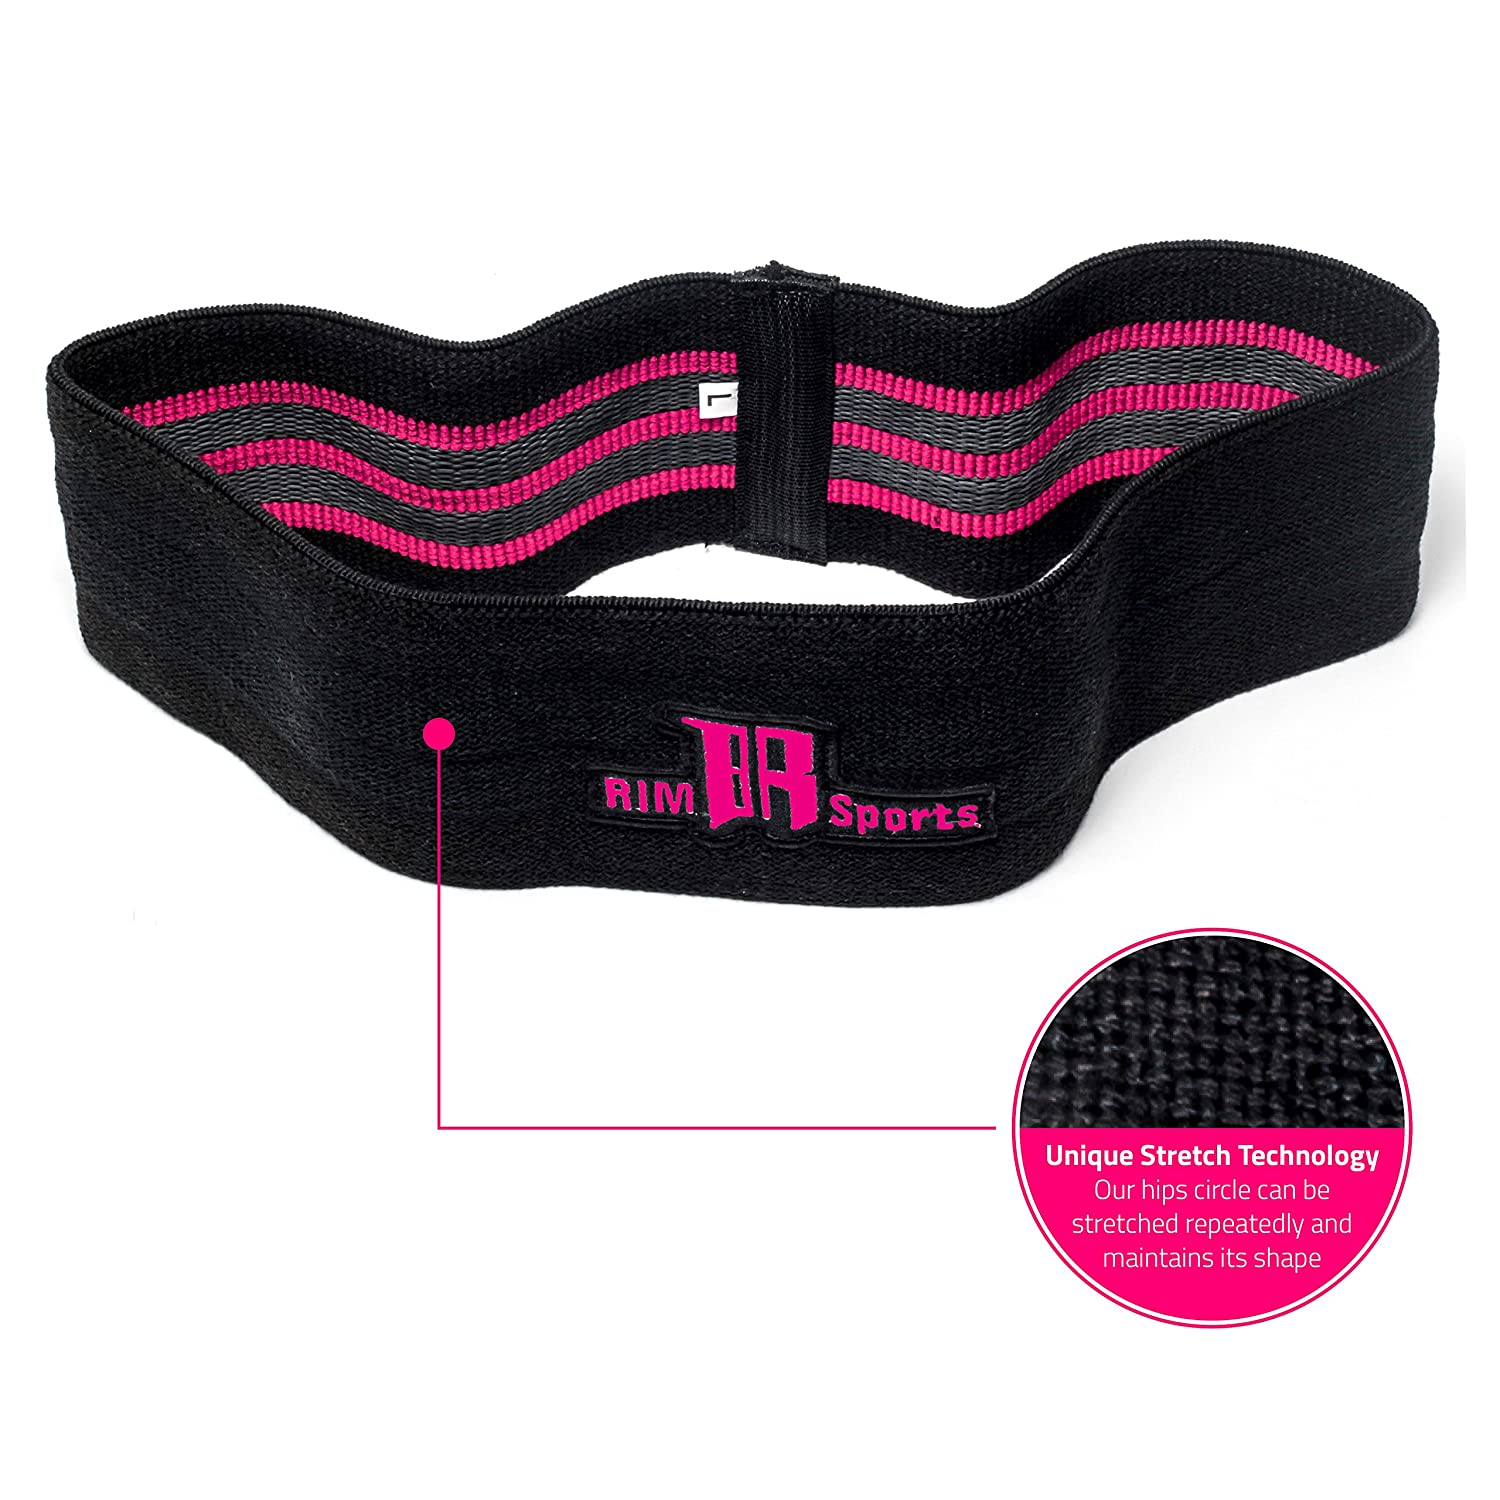 RIMSports Elite Hip Sling Resistance Bands Best Abductor Resistance Band for Squats Ideal Hip Band Circle for Lunges Premium Hip Band for Hips /& Glutes Exercises